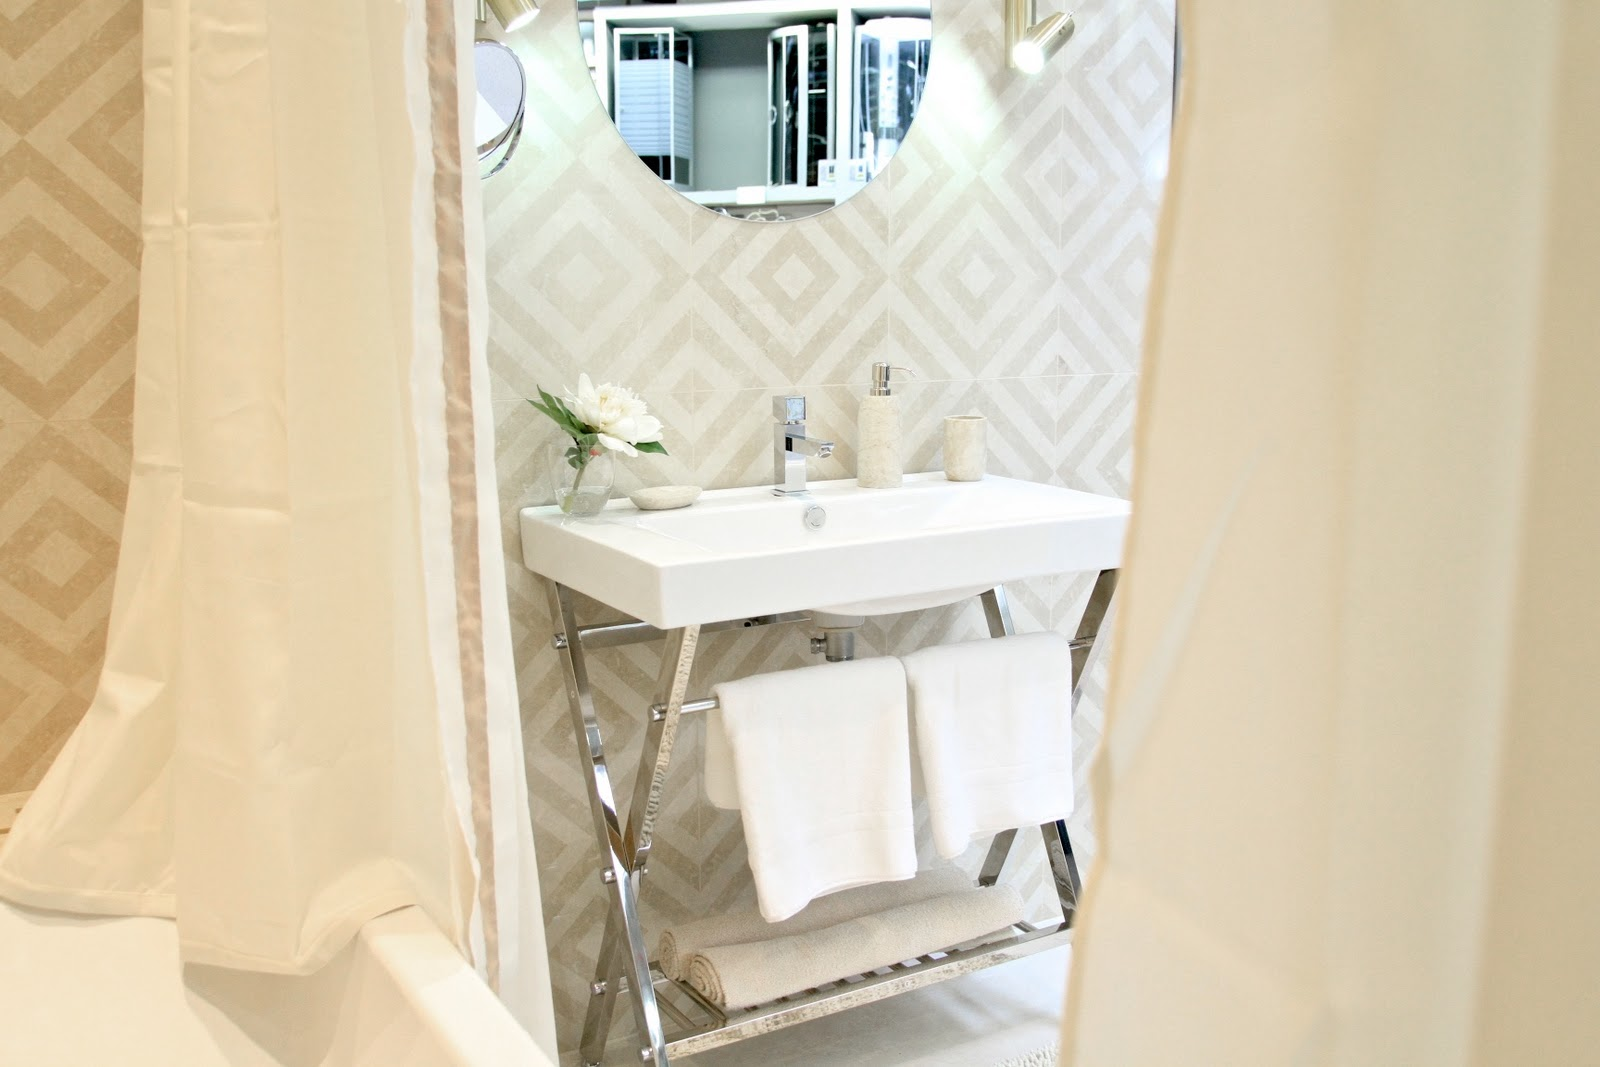 Home styling ana antunes bathroom showroom by ana antunes at leroy